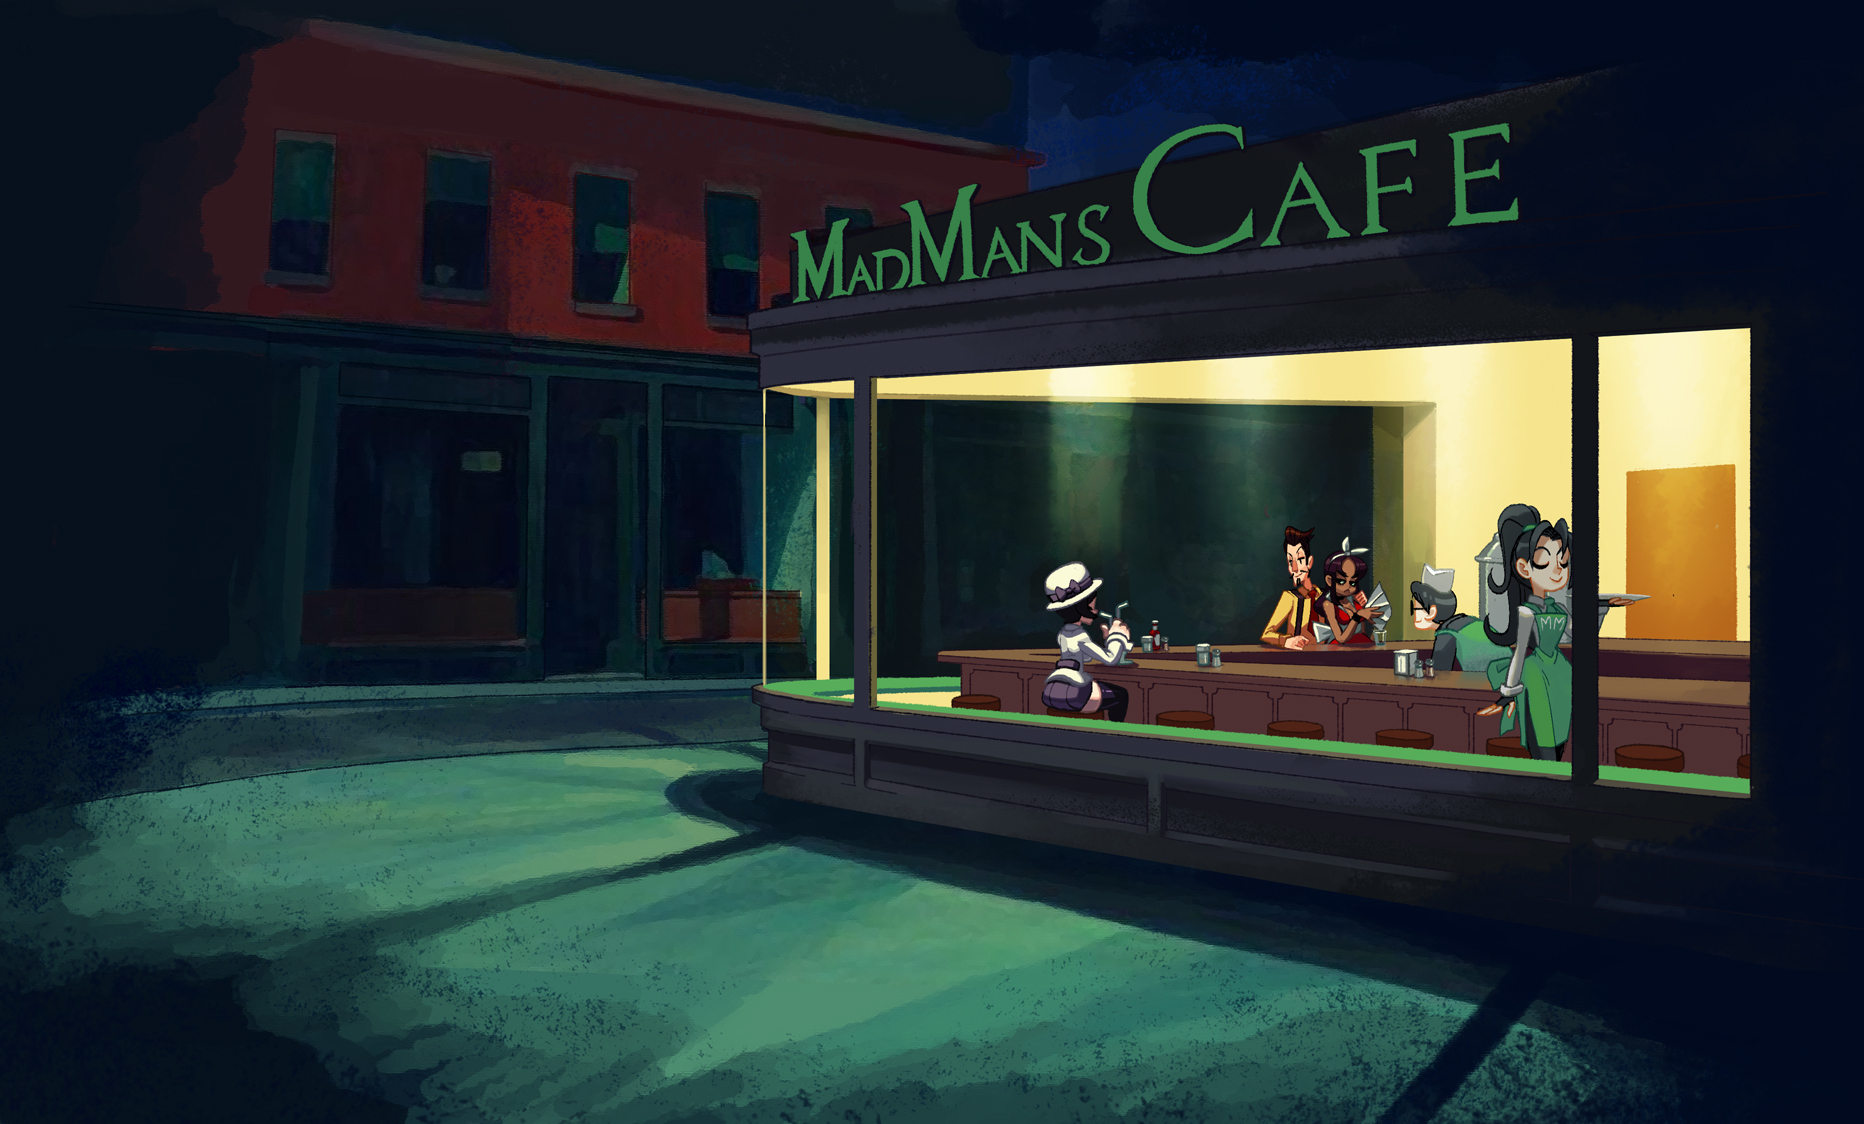 http://lounge.obviousmag.org/isso_compensa/2015/09/25/Nighthawks%20-%20mad%20mans.JPG